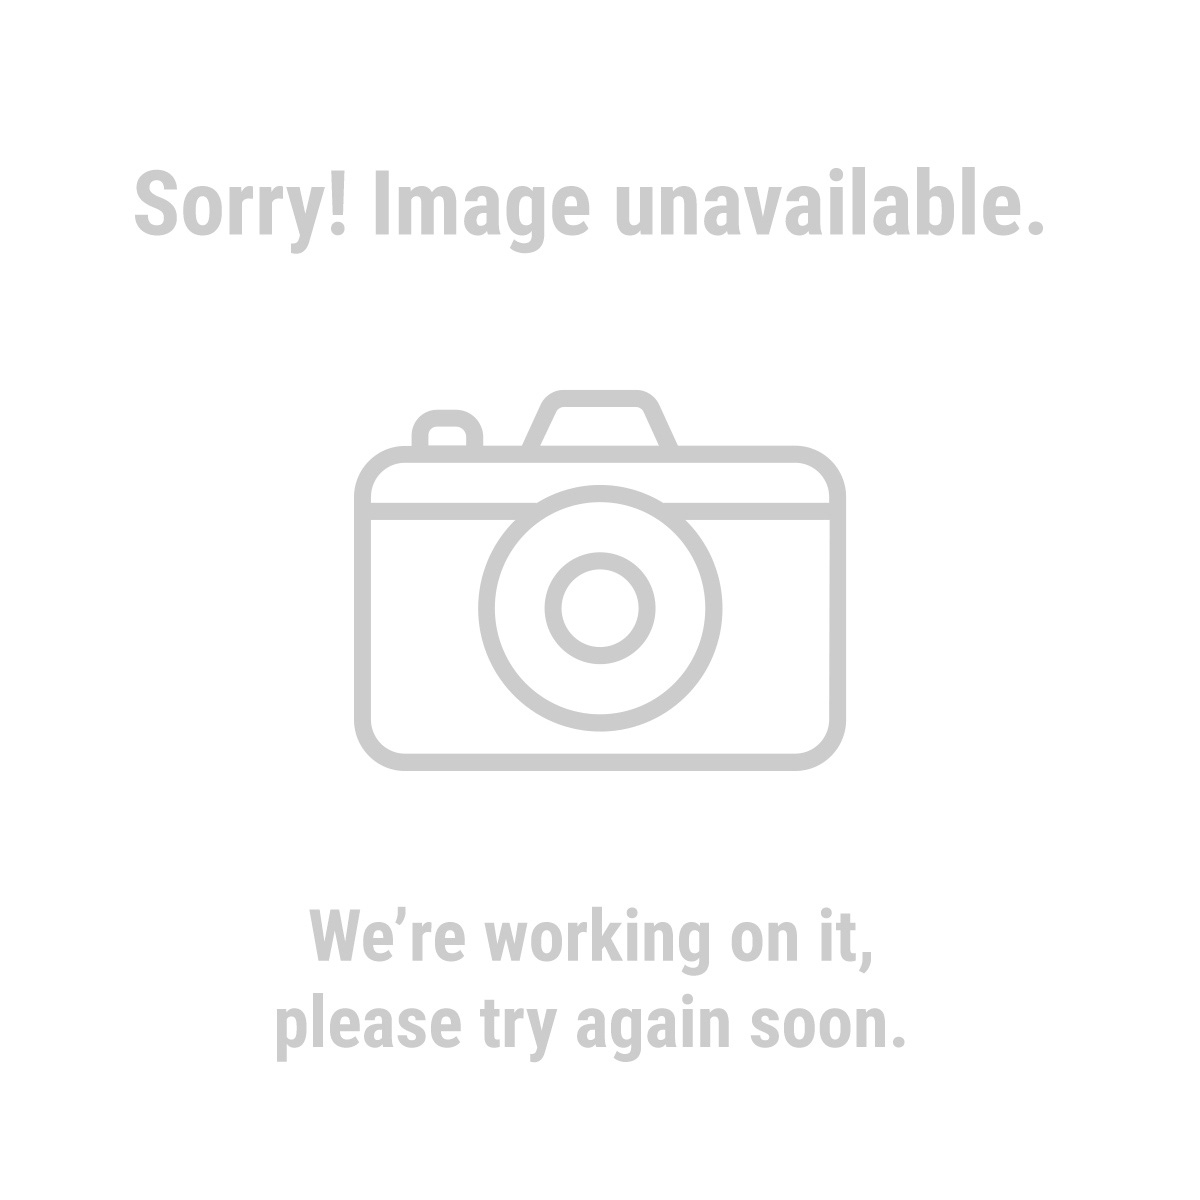 "Warrior® 67509 4-1/2"" x 1/4"" Depressed Center Grinding Wheel for Metal"